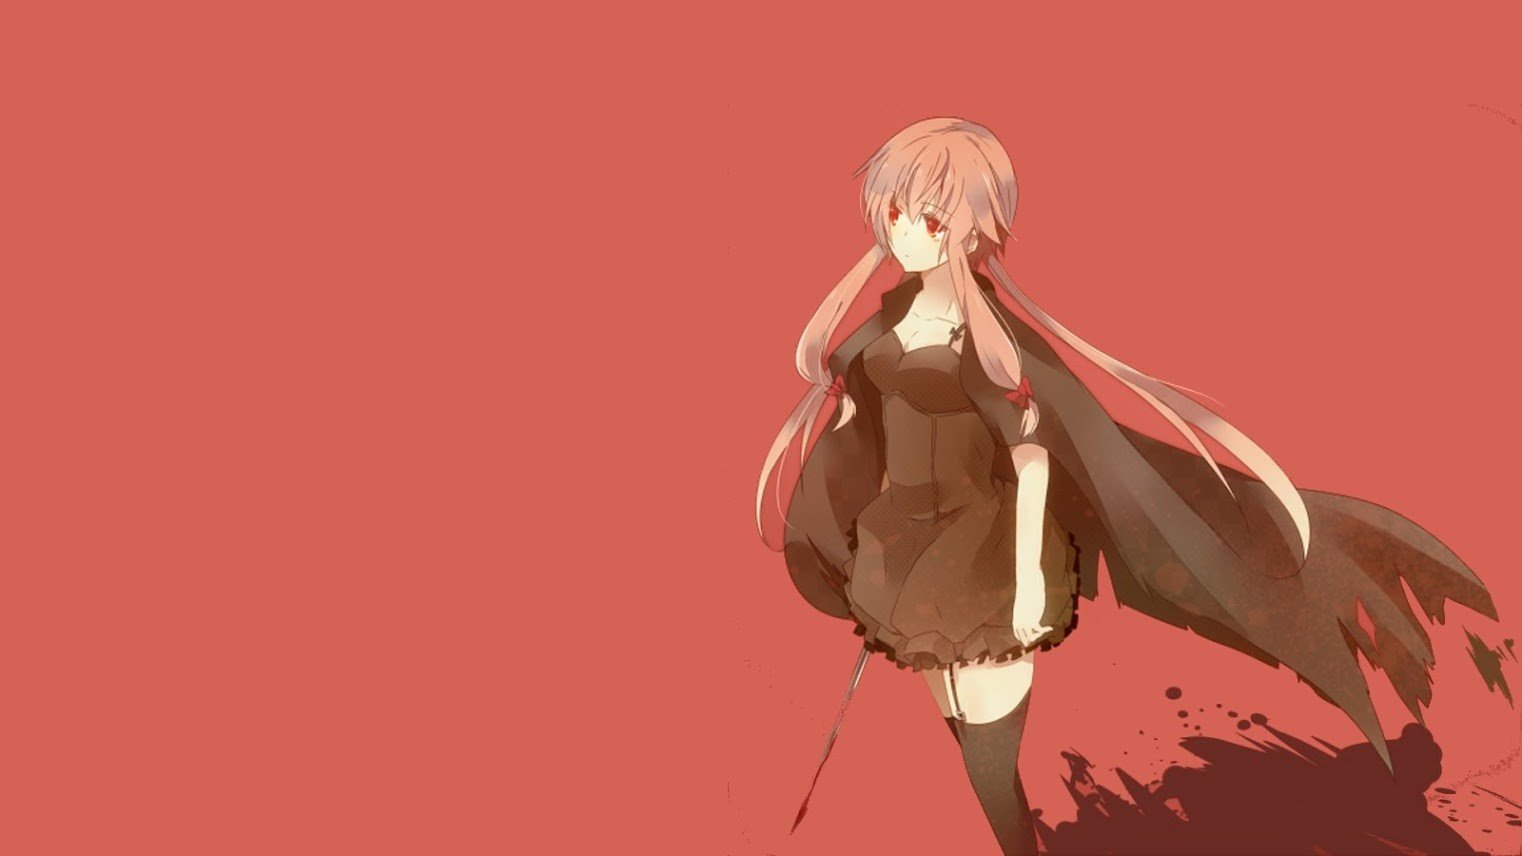 Mirai Nikki, Gasai Yuno, Anime Girls Hd Wallpapers -1174